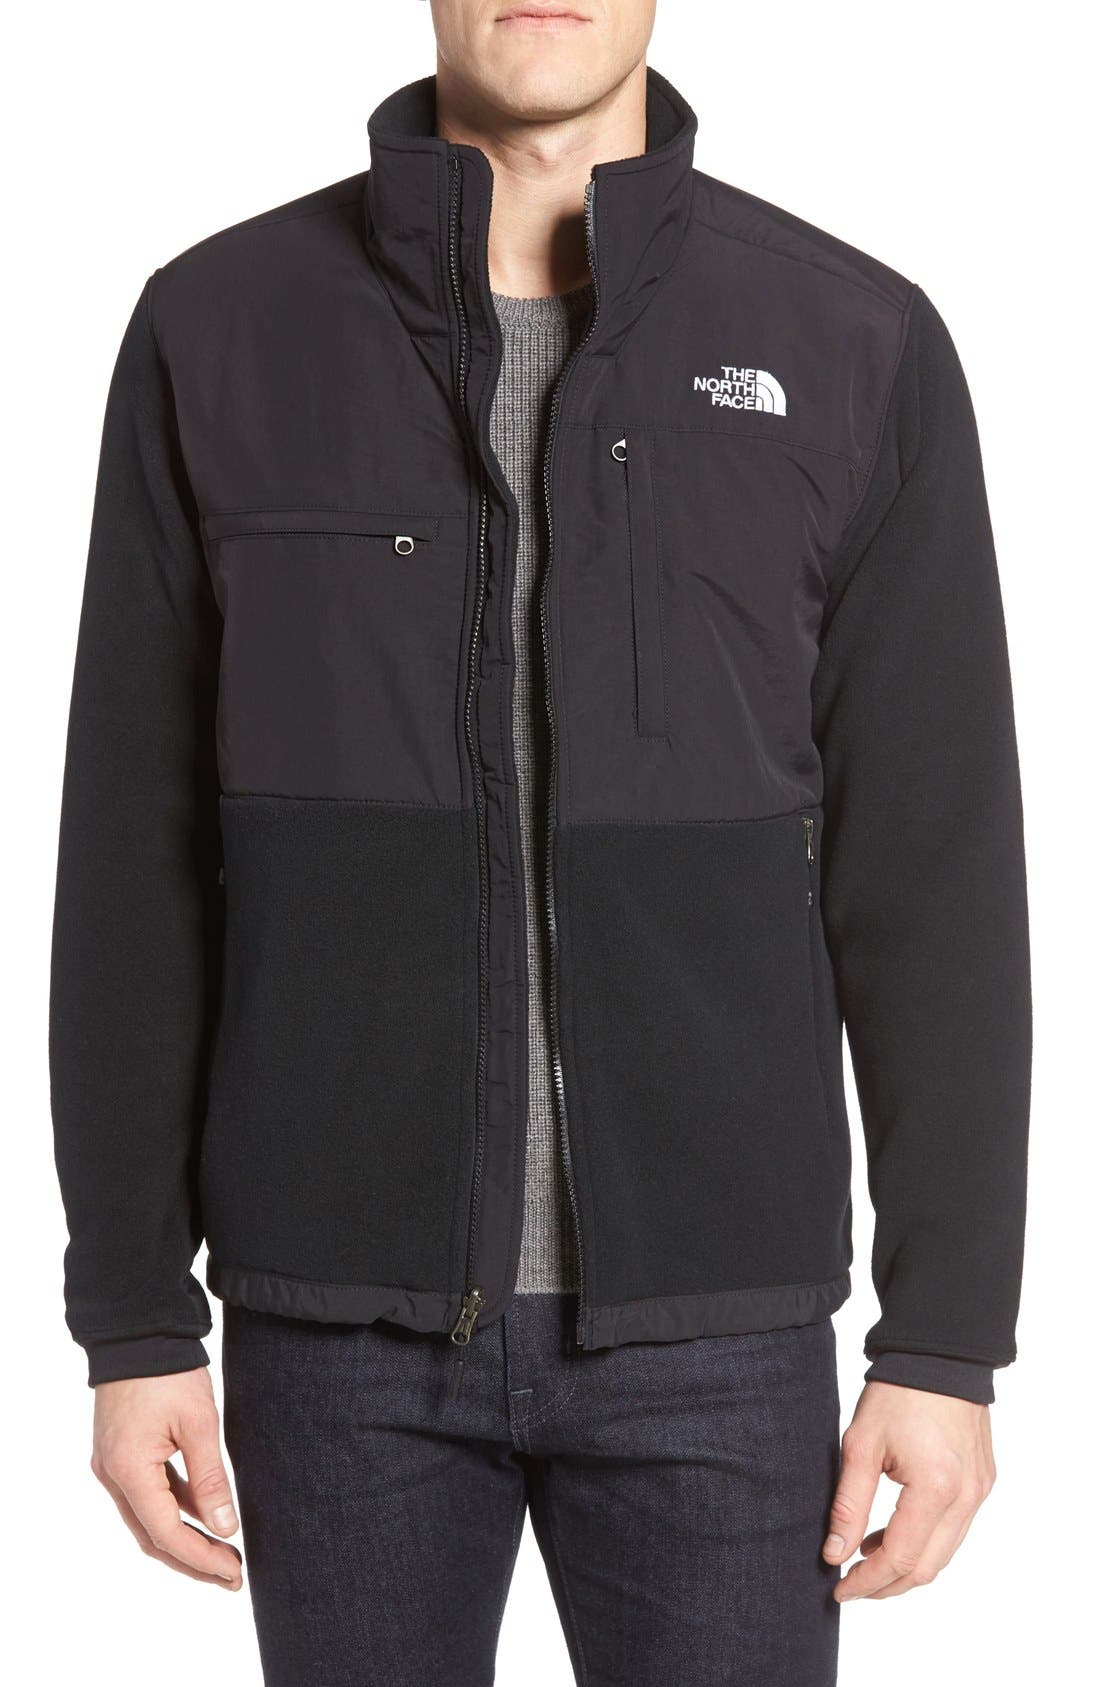 Main Image - The North Face Denali 2 Recycled Fleece Jacket